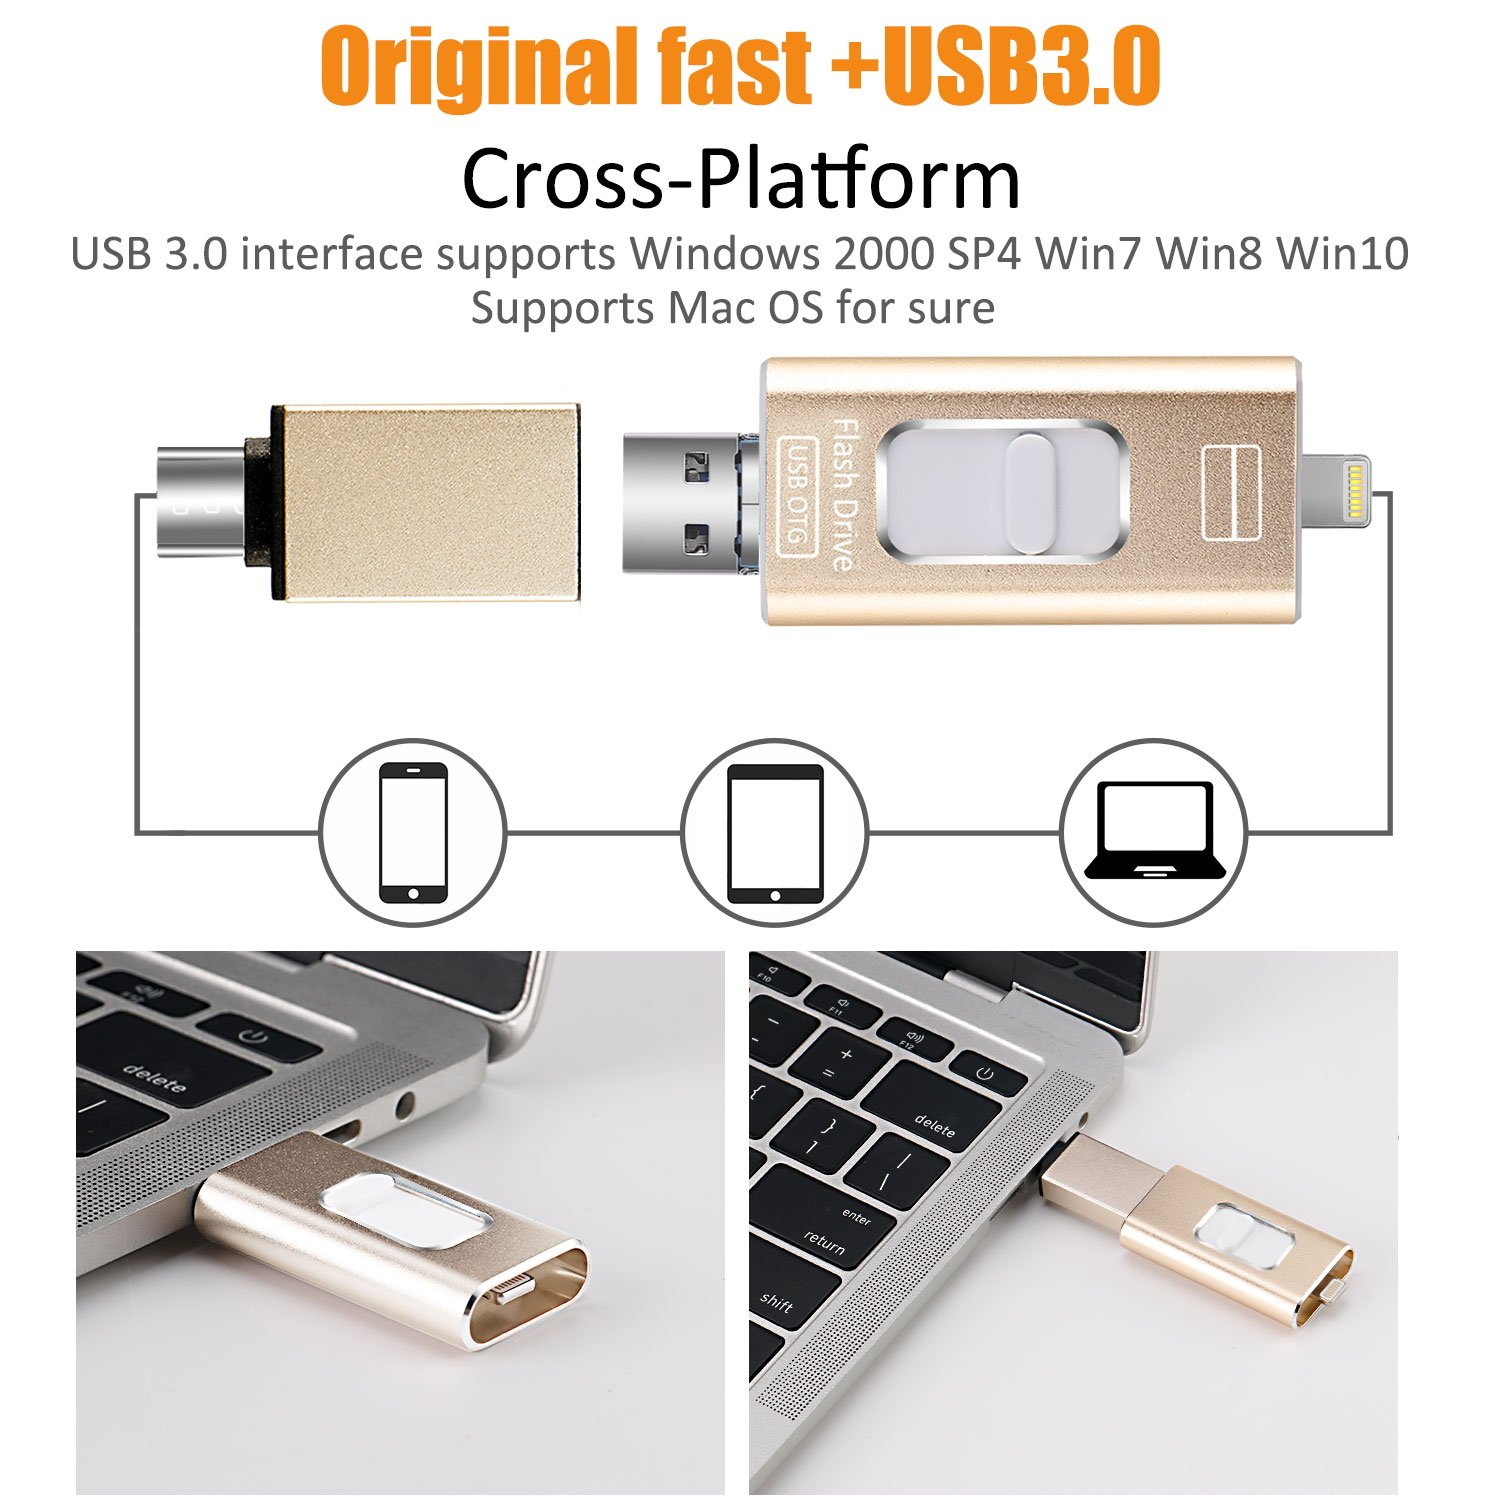 3 in 1 USB Flash Drives for iPhone and iPad 32GB,FAJUNYU iOS Flash Drive Memory Stick Expansion for iPhone,iPad,MacBook,Android,PC and More Devices with USB Port Gold